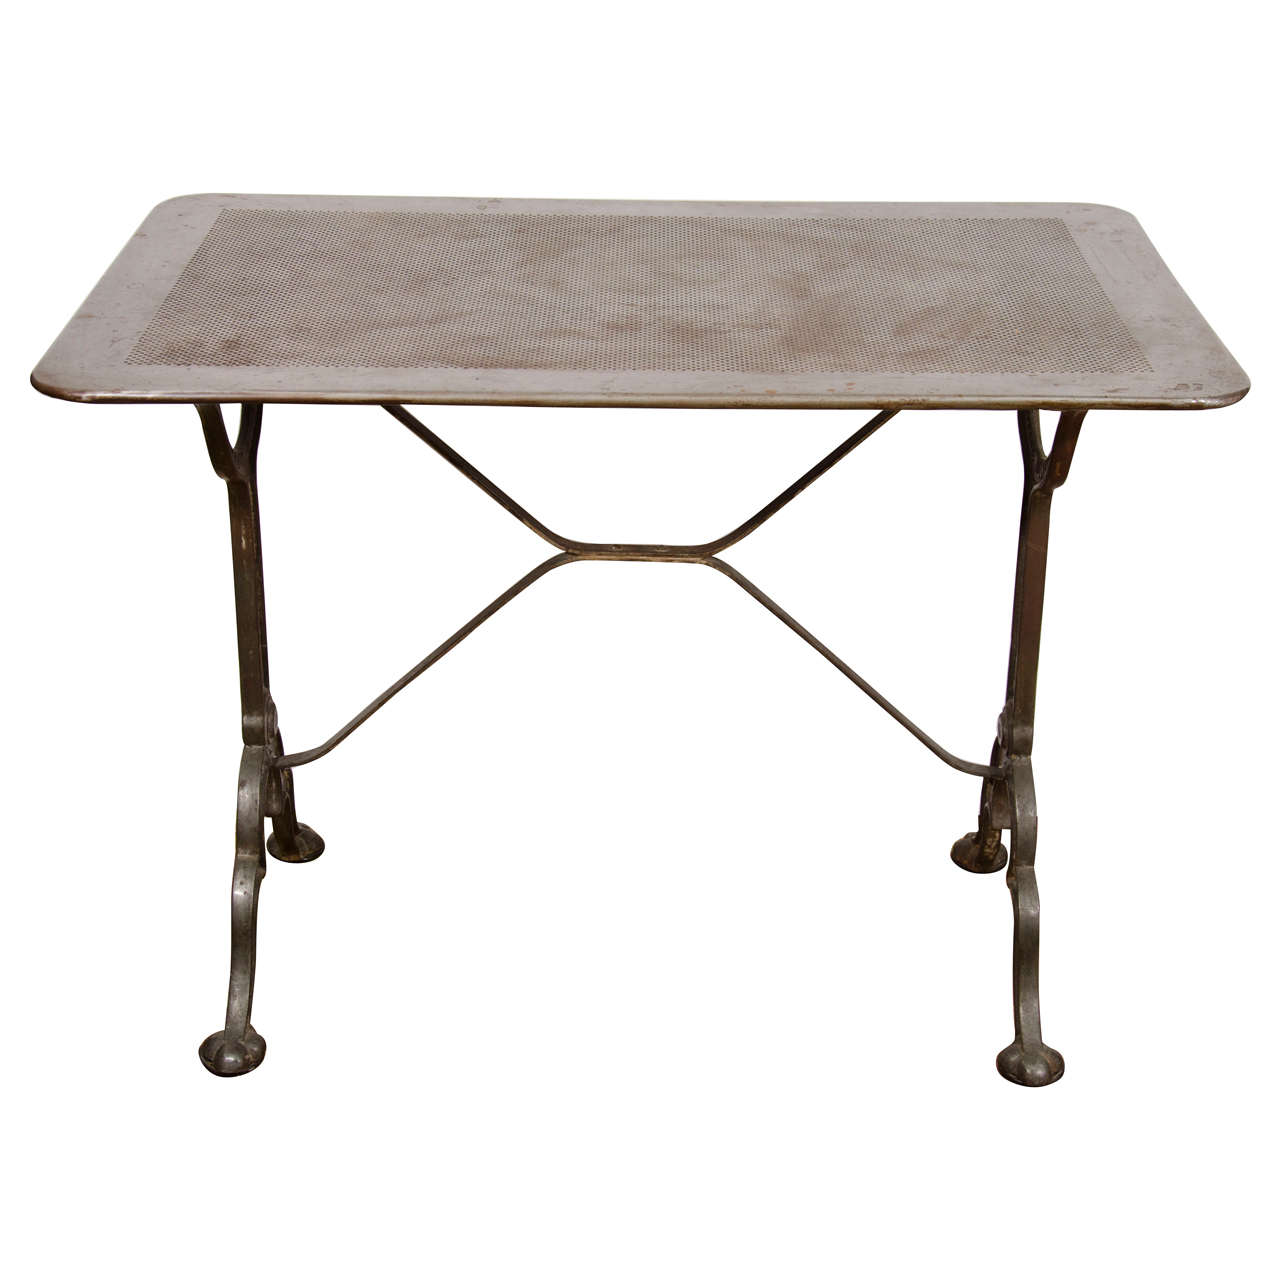 French bistro table signed pierre ouvrier at 1stdibs for Table 7 bistro